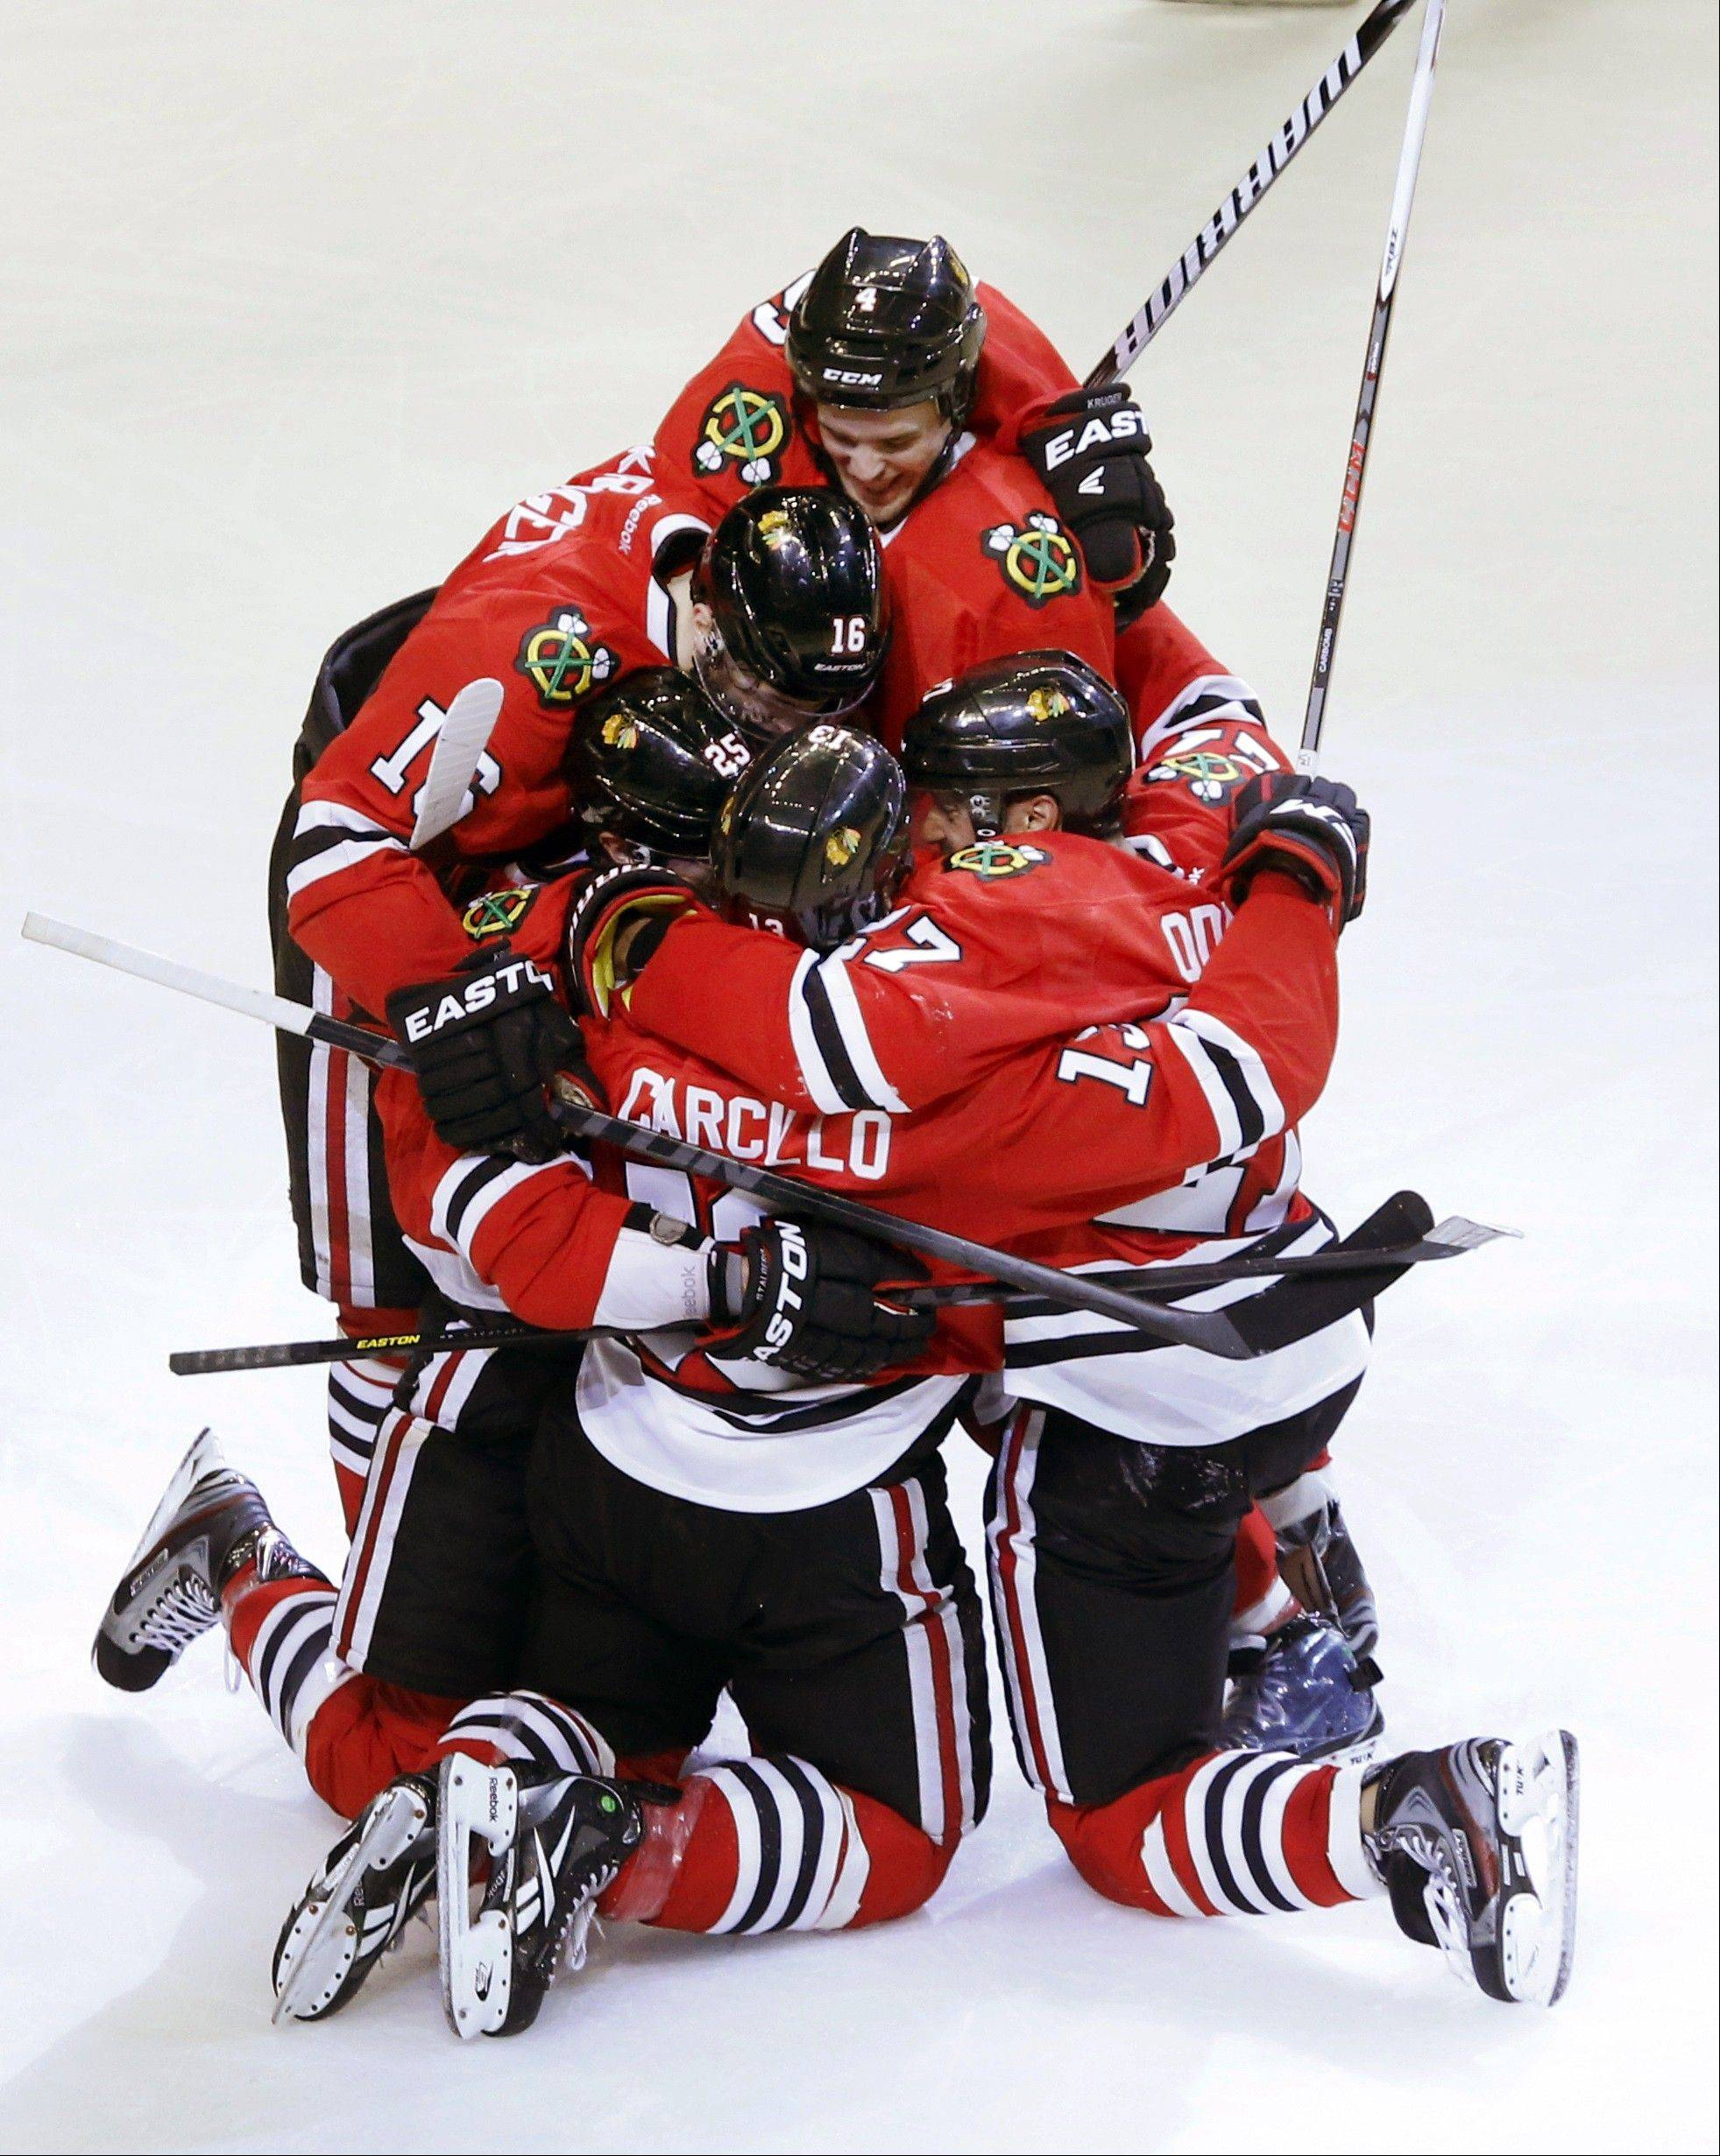 Chicago Blackhawks left wing Daniel Carcillo, bottom center, is mobbed by teammates as they celebrate Carcillo's winning goal during the third period of an NHL hockey game against the Colorado Avalanche, Wednesday, March 6, 2013, in Chicago. The Blackhawks won 3-2. (AP Photo/Charles Rex Arbogast)